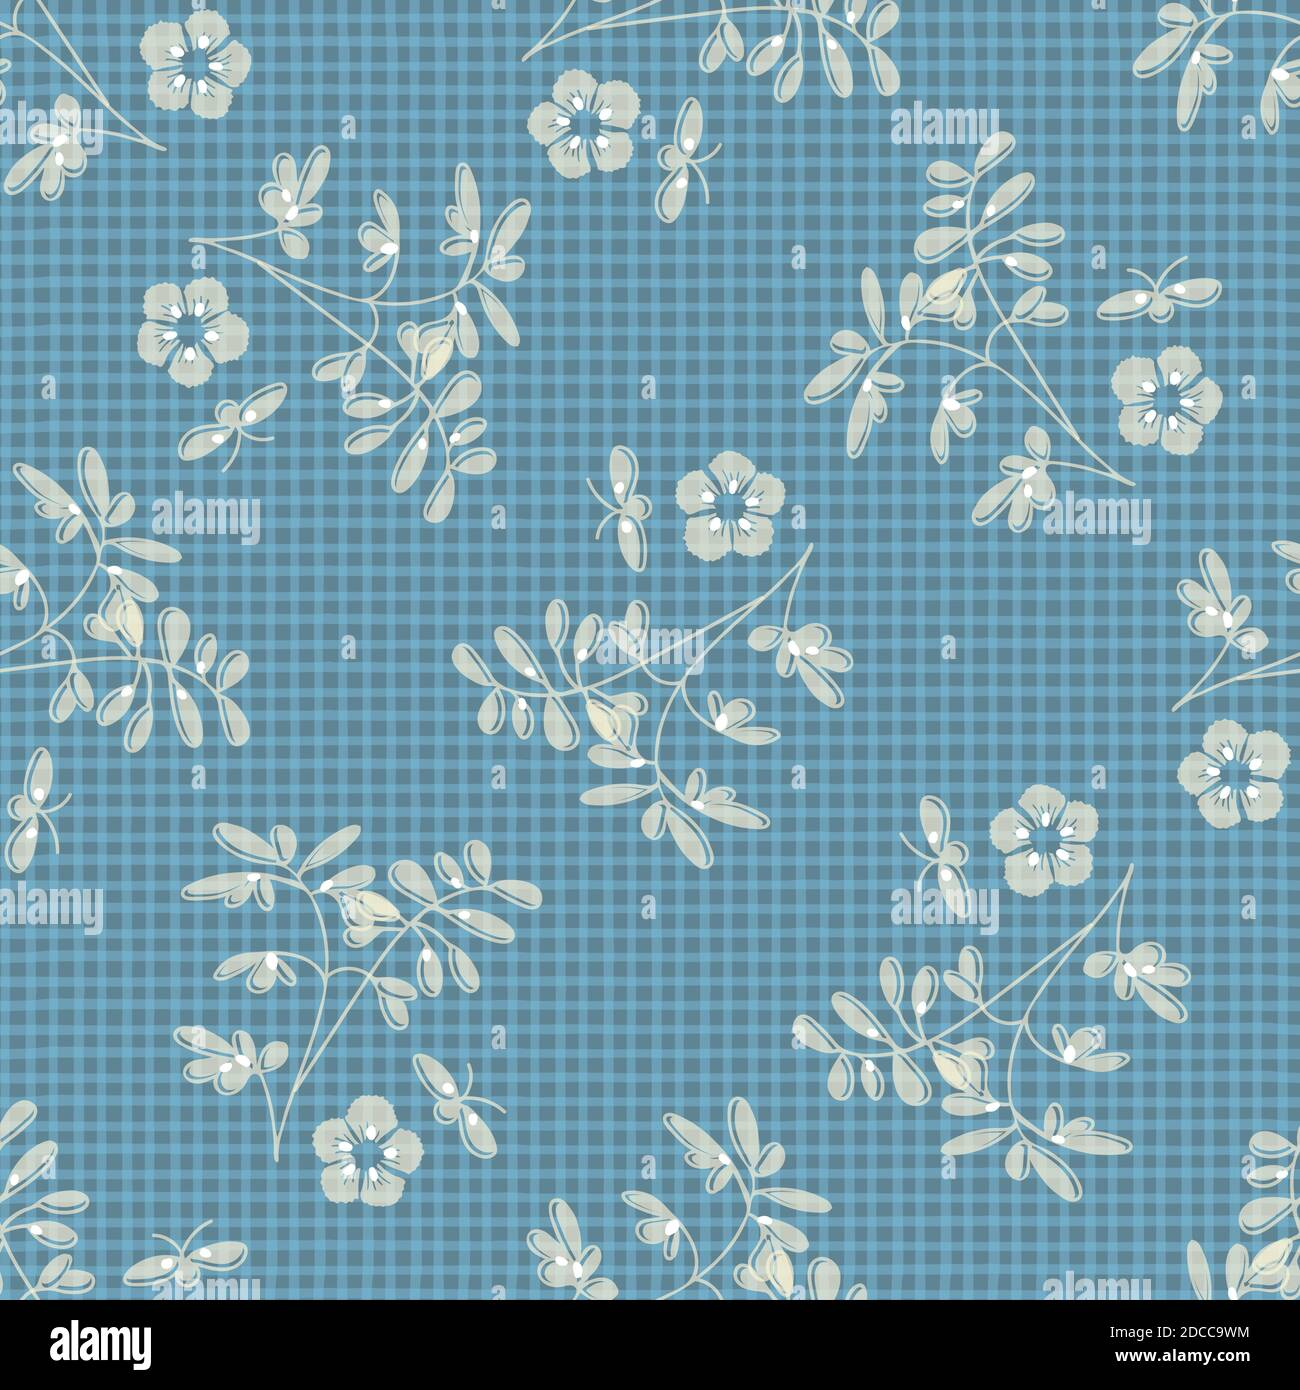 Dishcloth Gingham Seamless Vector Repeat Pattern Background. Red ...